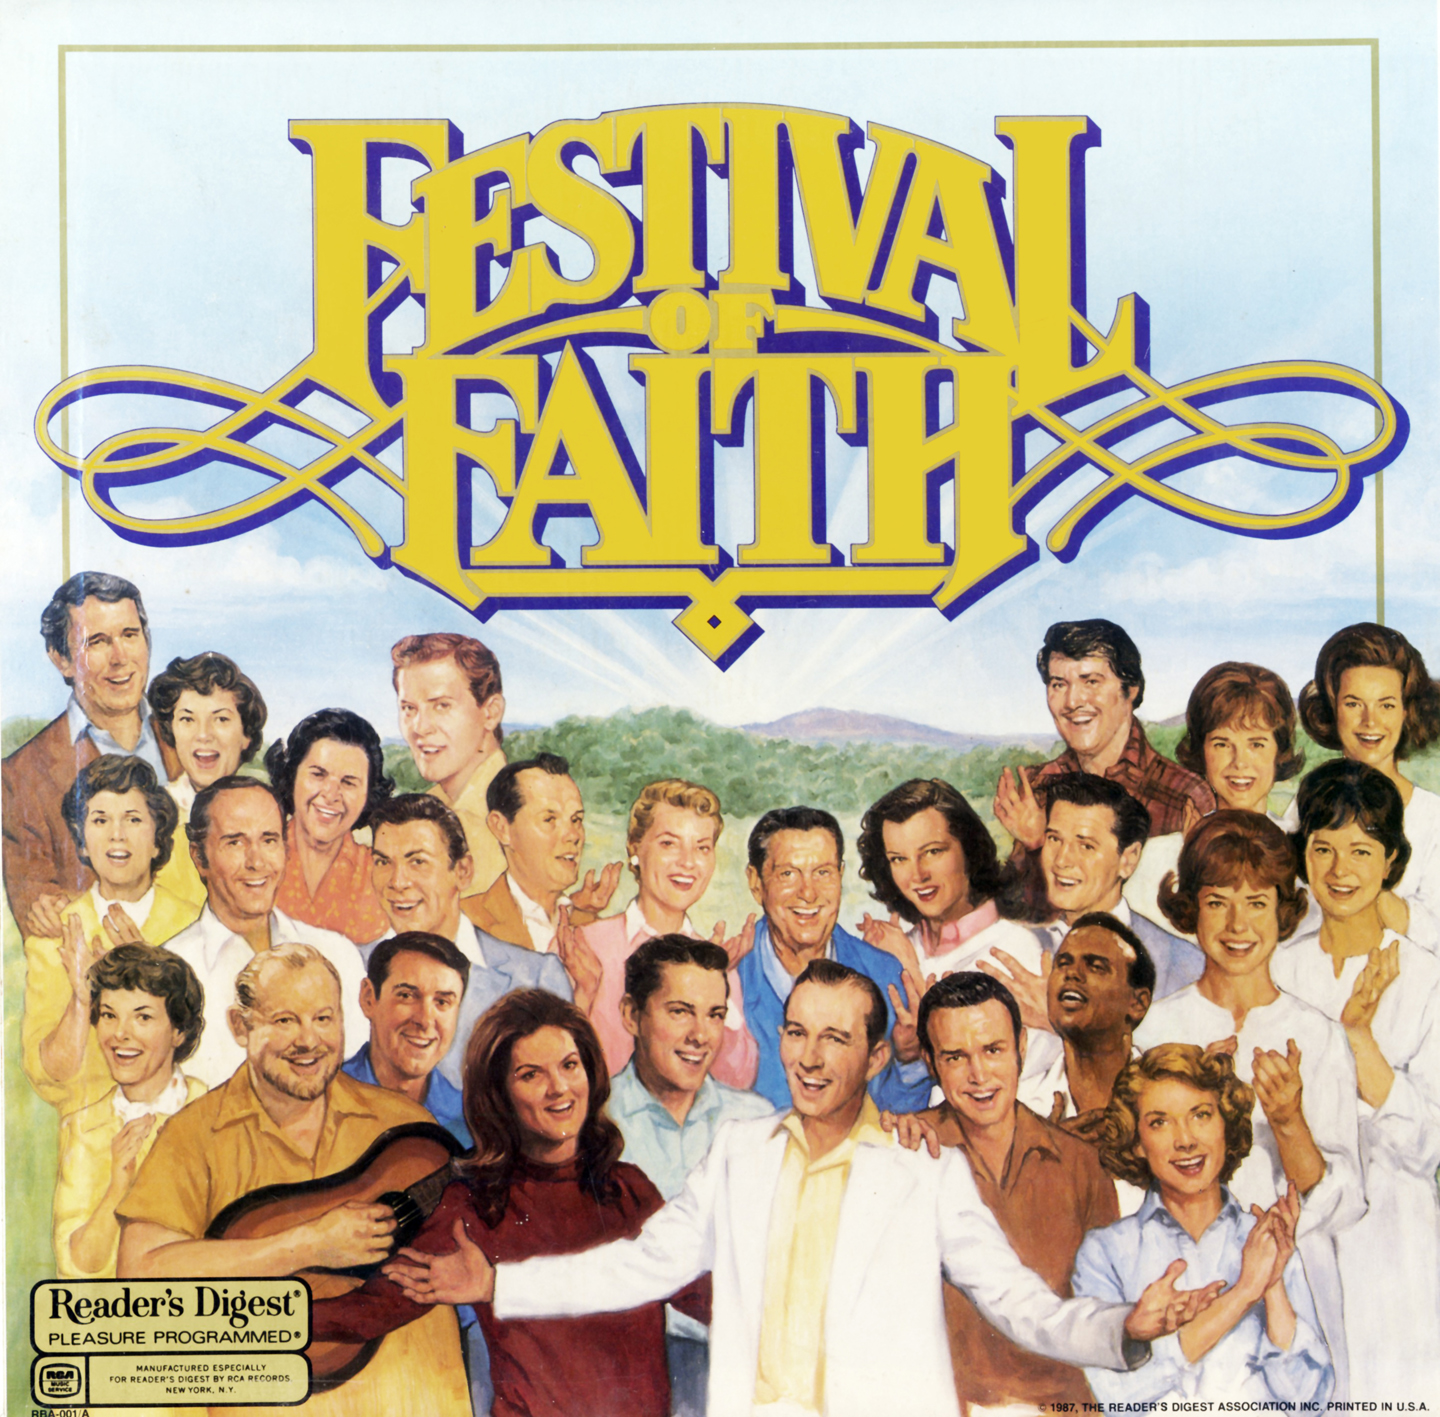 RBA001 - Festival of Faith on CD